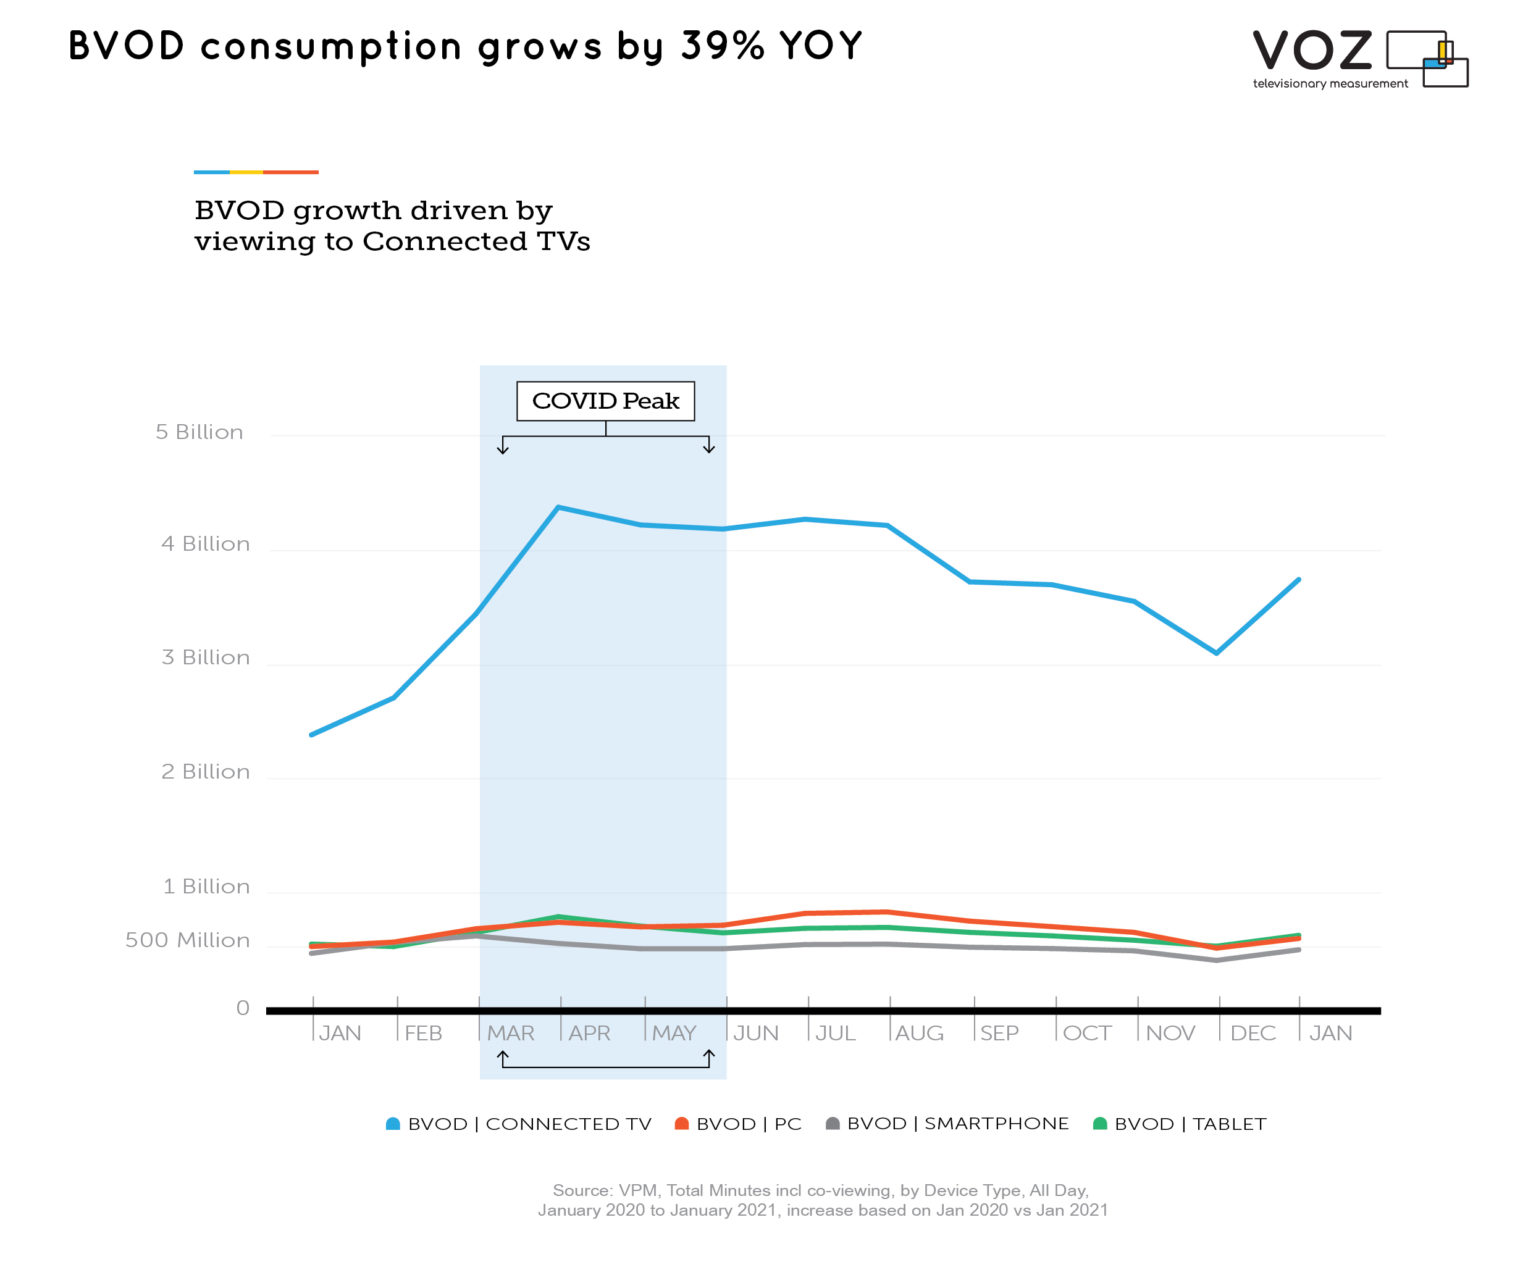 Australia - BVOD consumption grows by 39% YoY - 2020